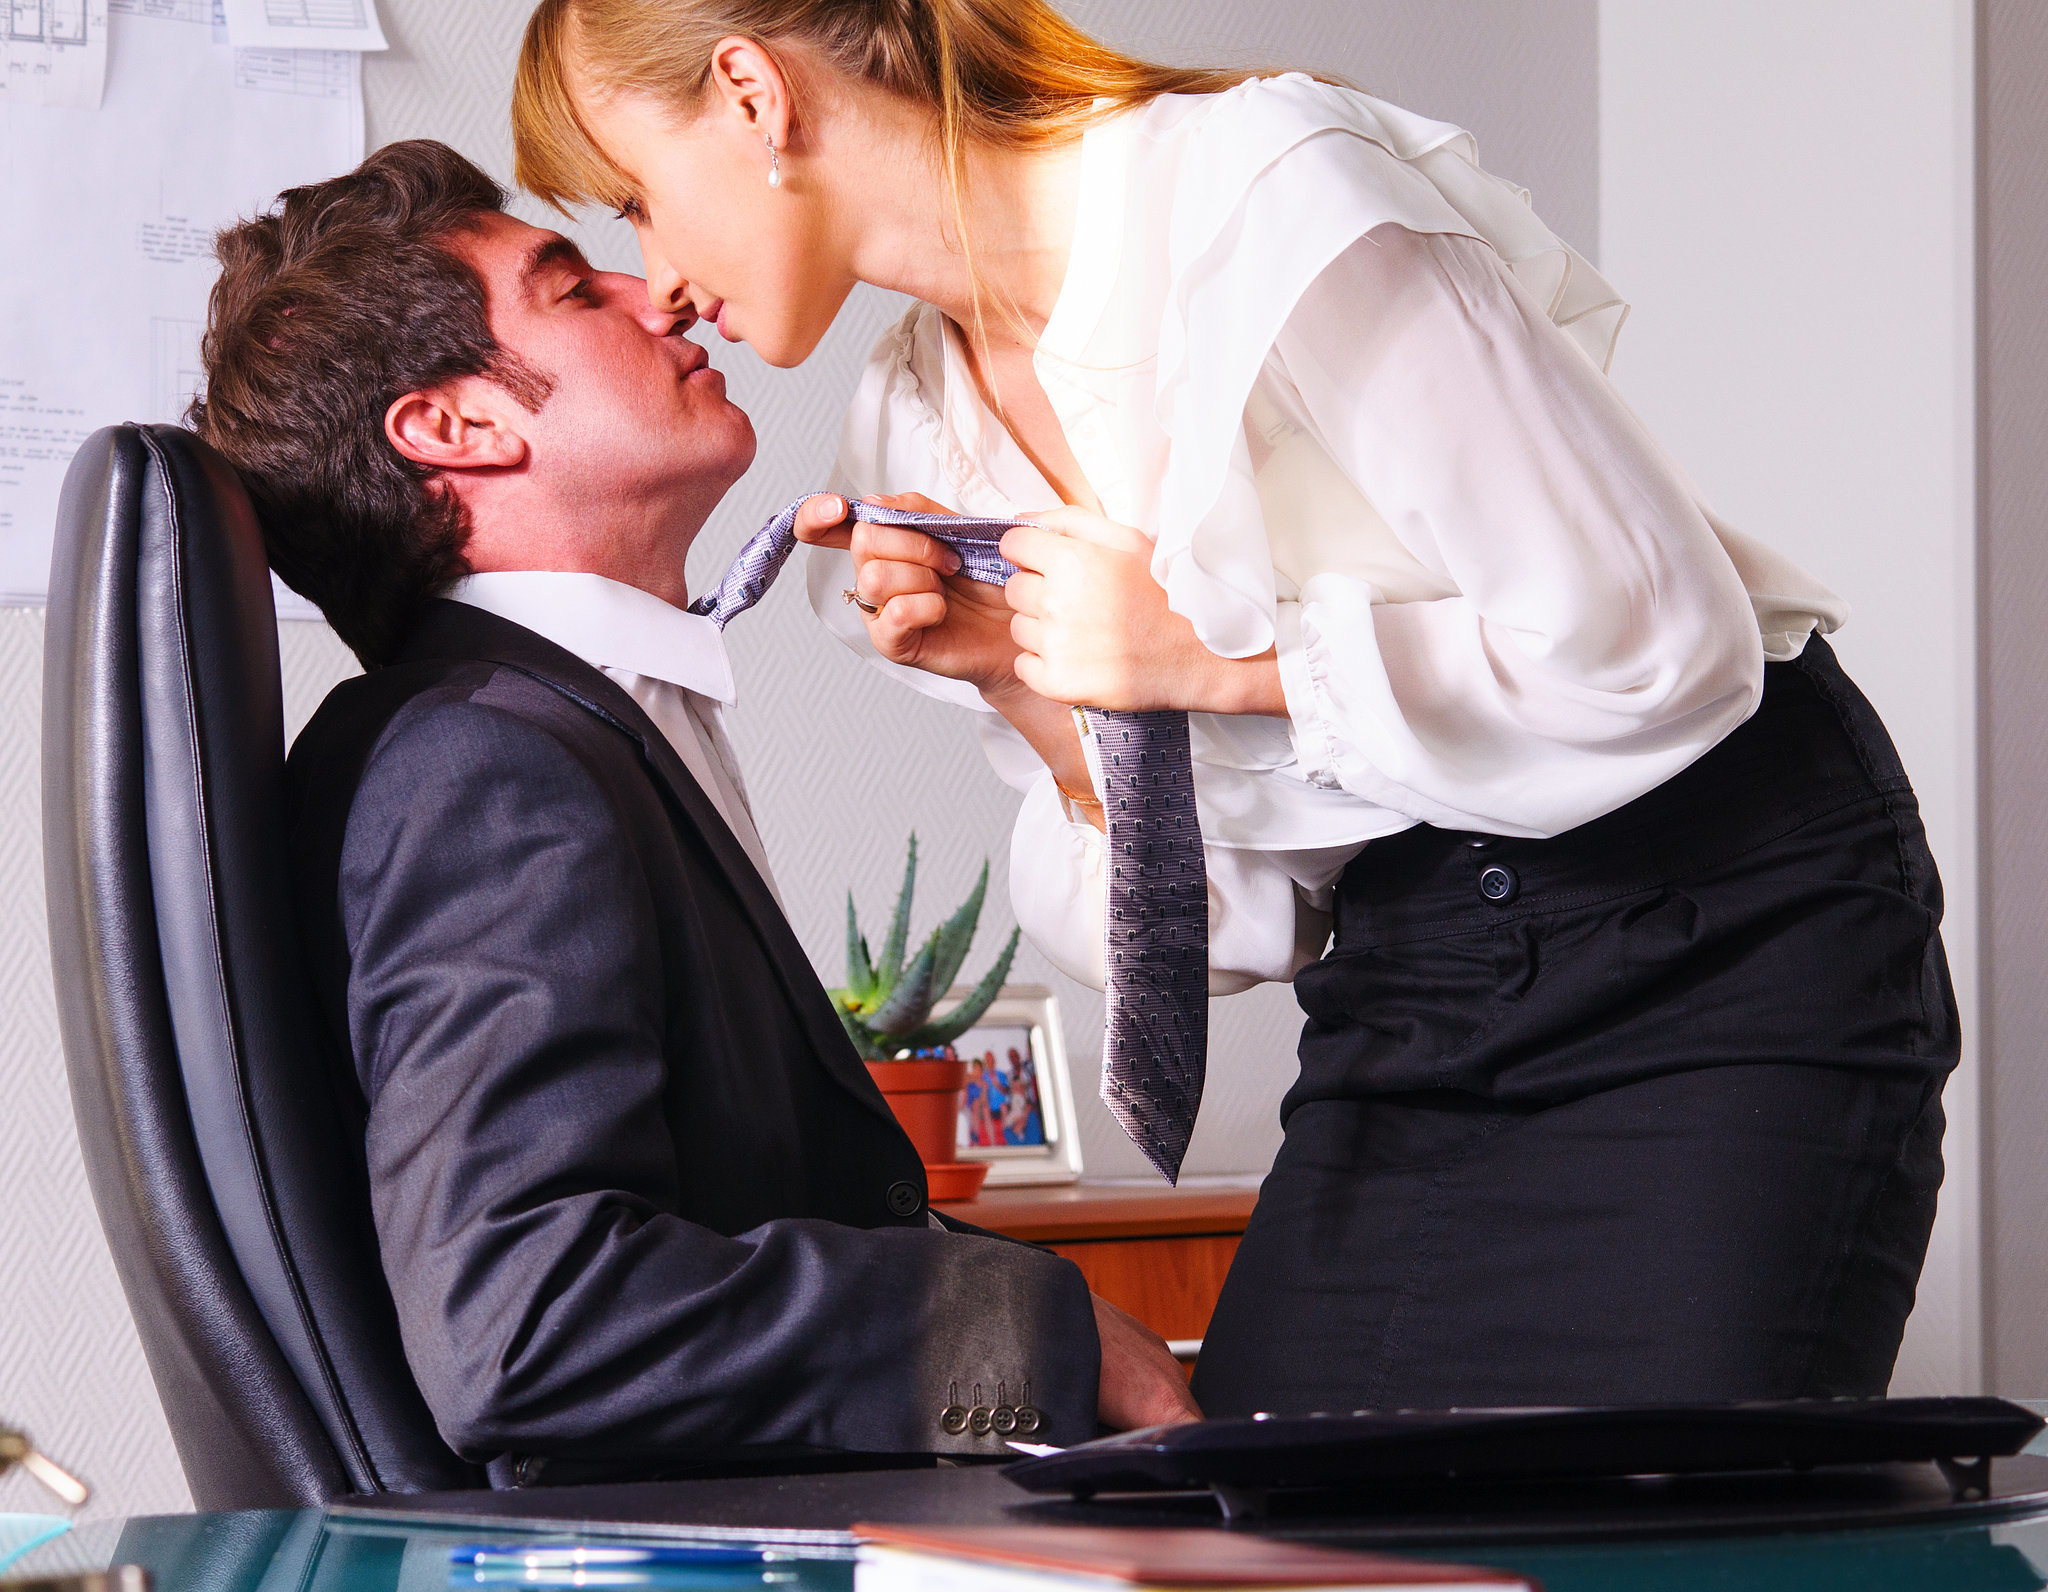 dating my female boss If coworkers date all the time, what's so wrong getting romantic with the boss share this on facebook: onfbme/1pzbs1m share this on twitter: .